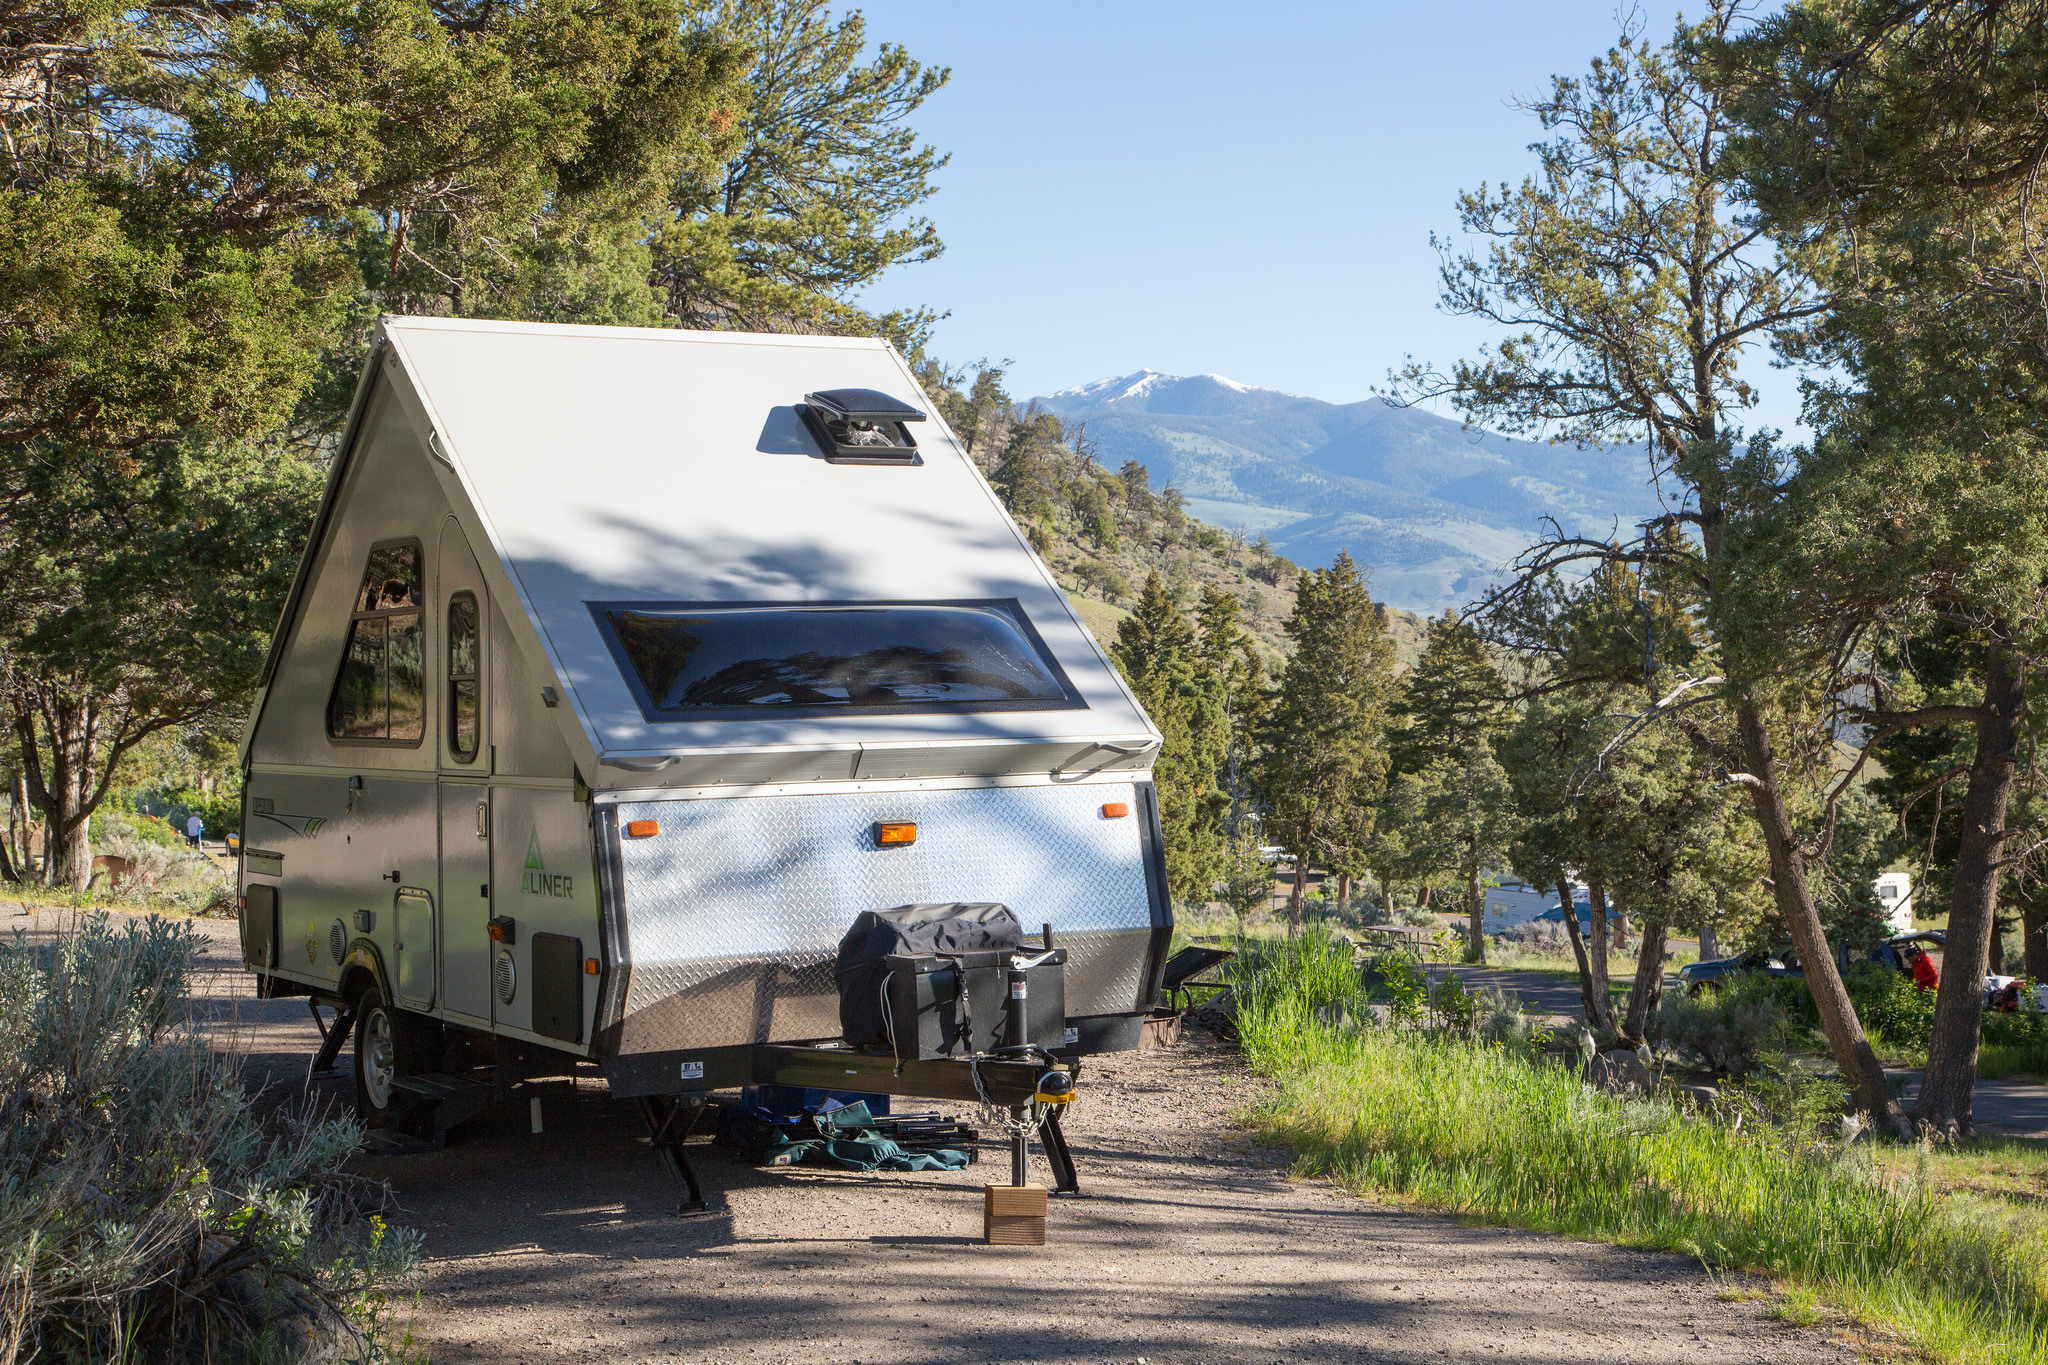 camping part two: yellowstone national park - gardiner, montana